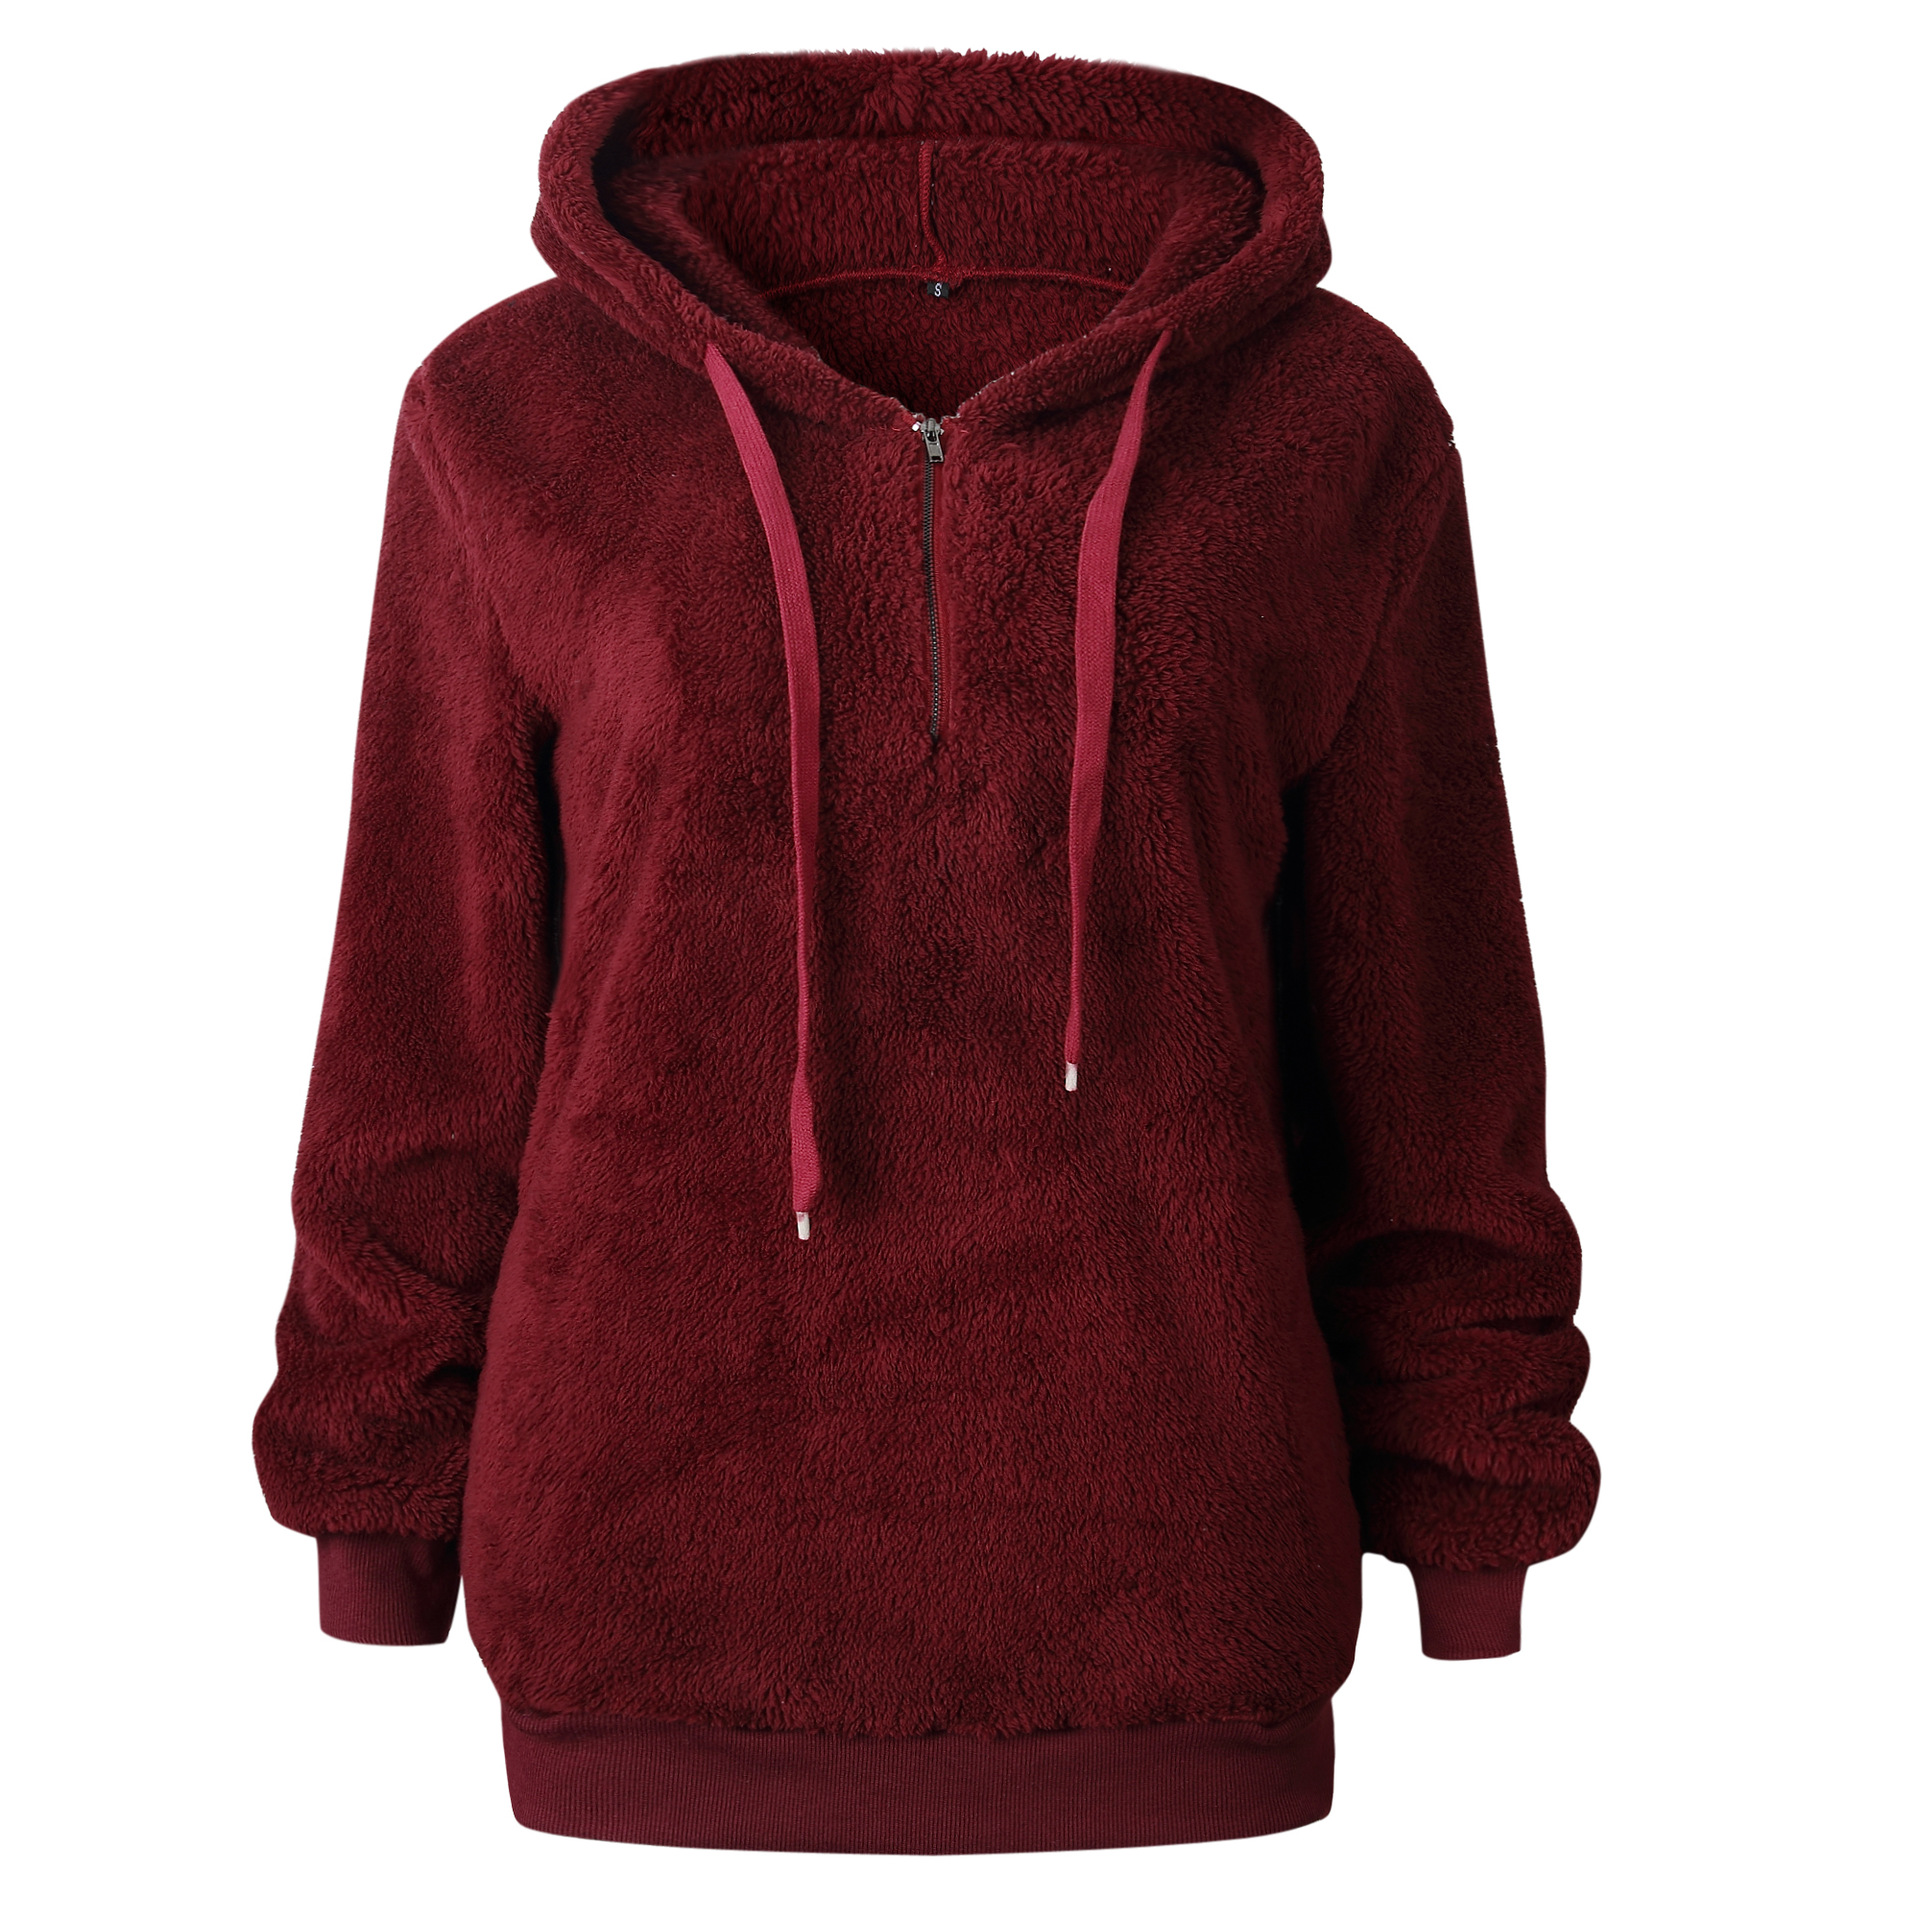 2019 Autumn Female Pullover Women Hoodies Solid Loose Drawstring Sweatshirt Long Sleeve Red